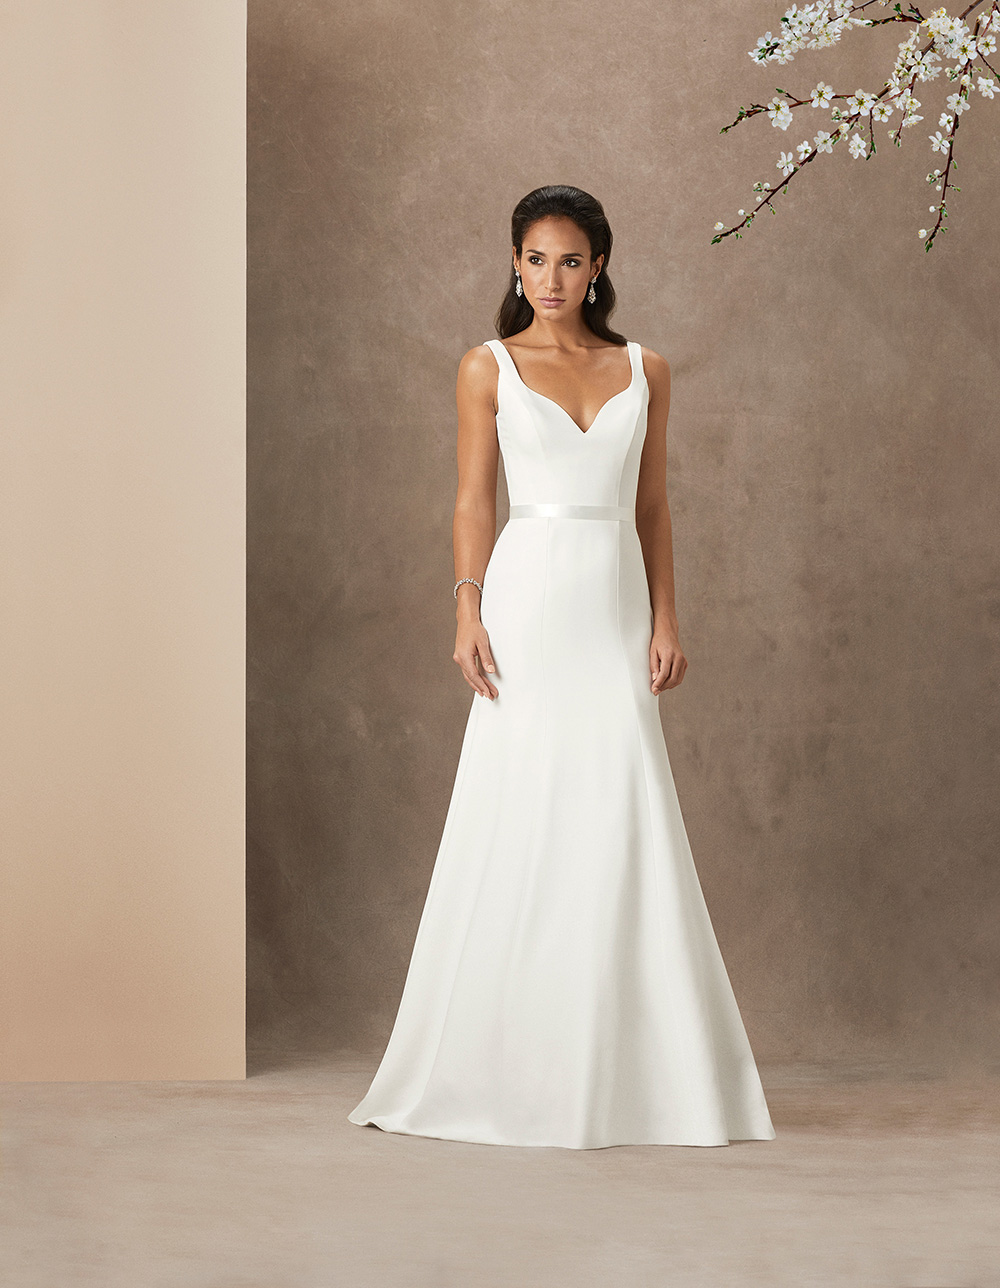 Celia luxury wedding gown by Caroline Castigliano